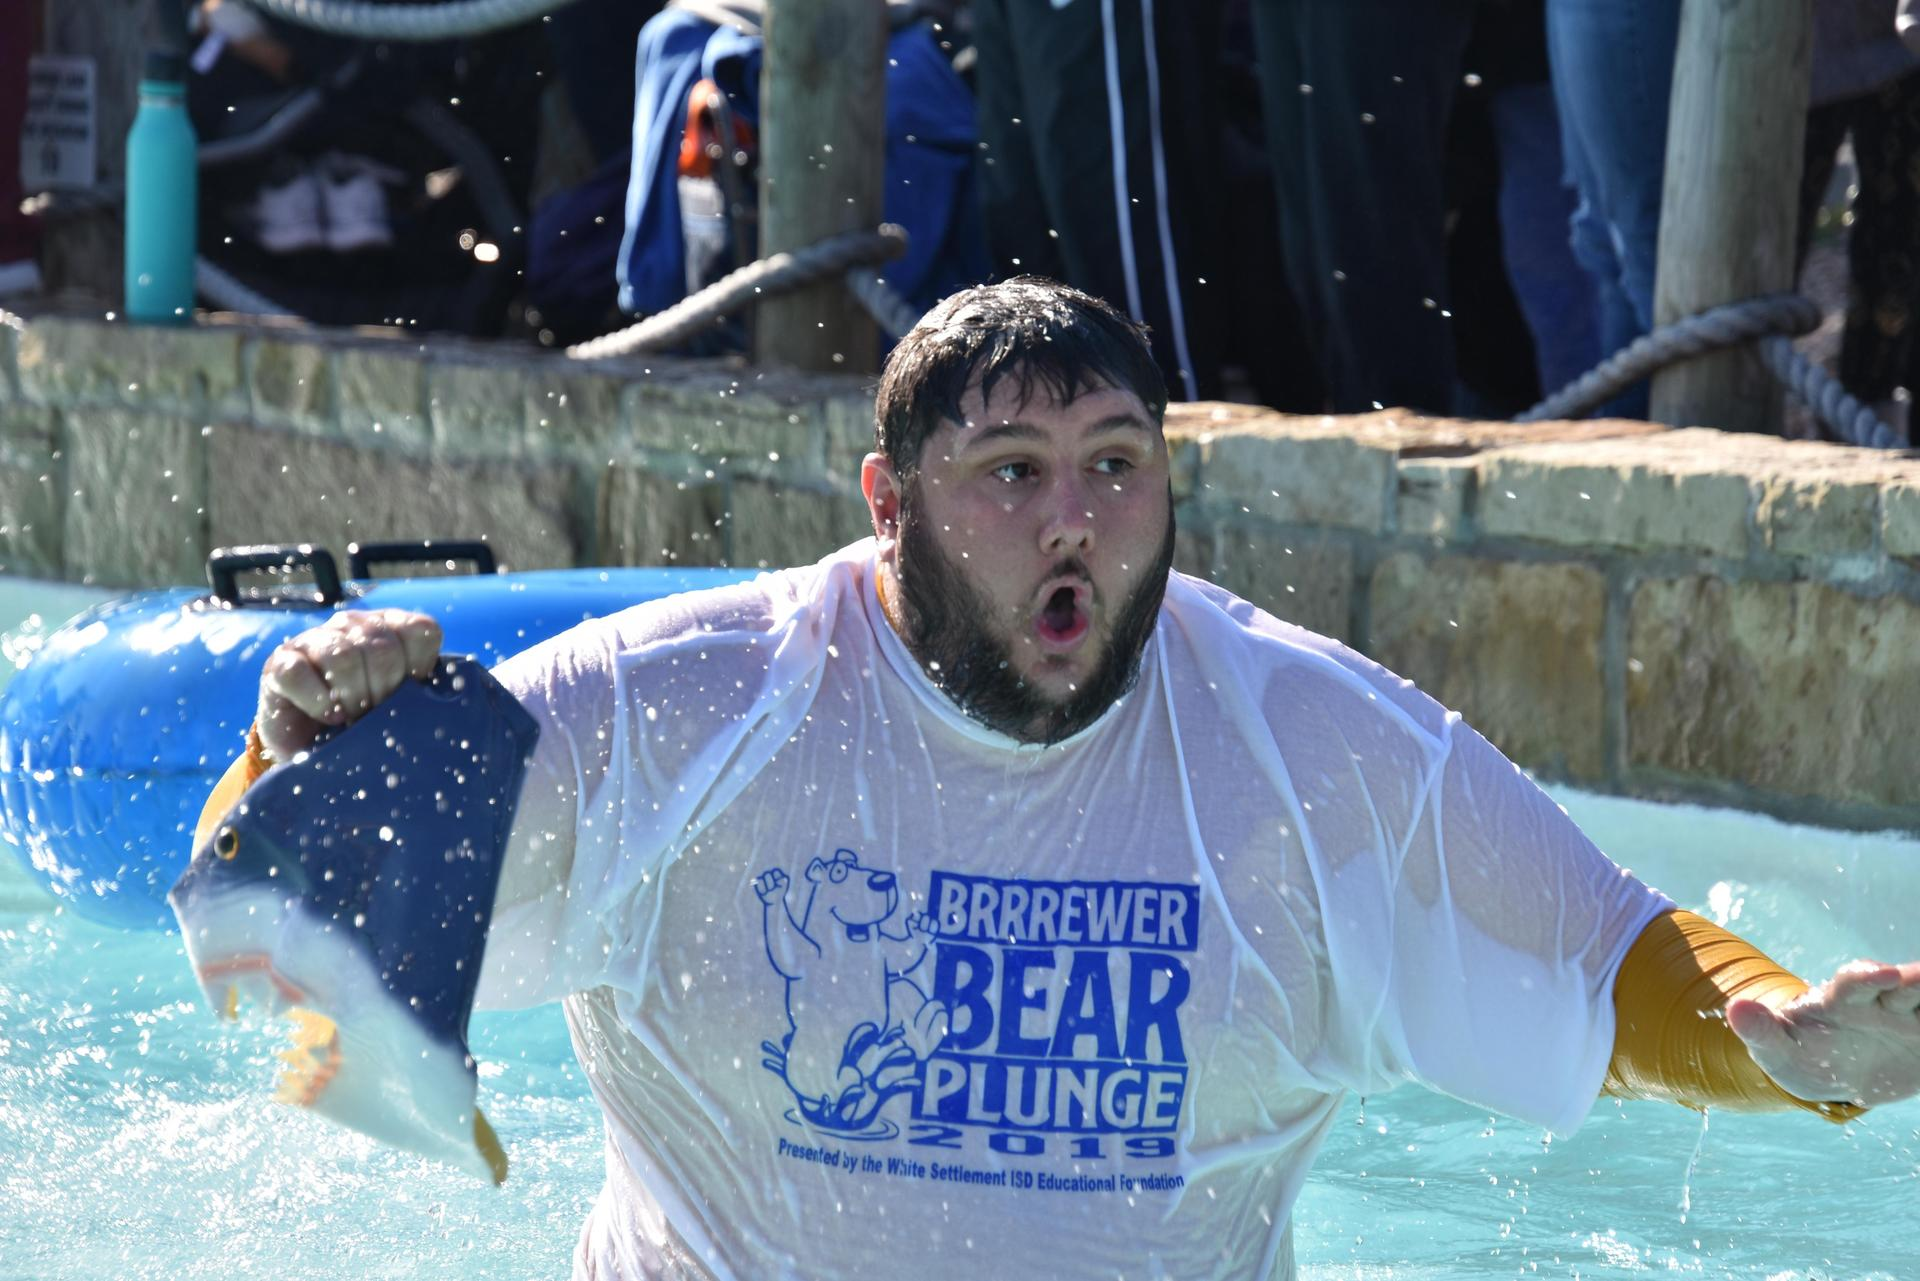 The Foundation raised more than $8,000 during the BRRRewer Bear Plunge.